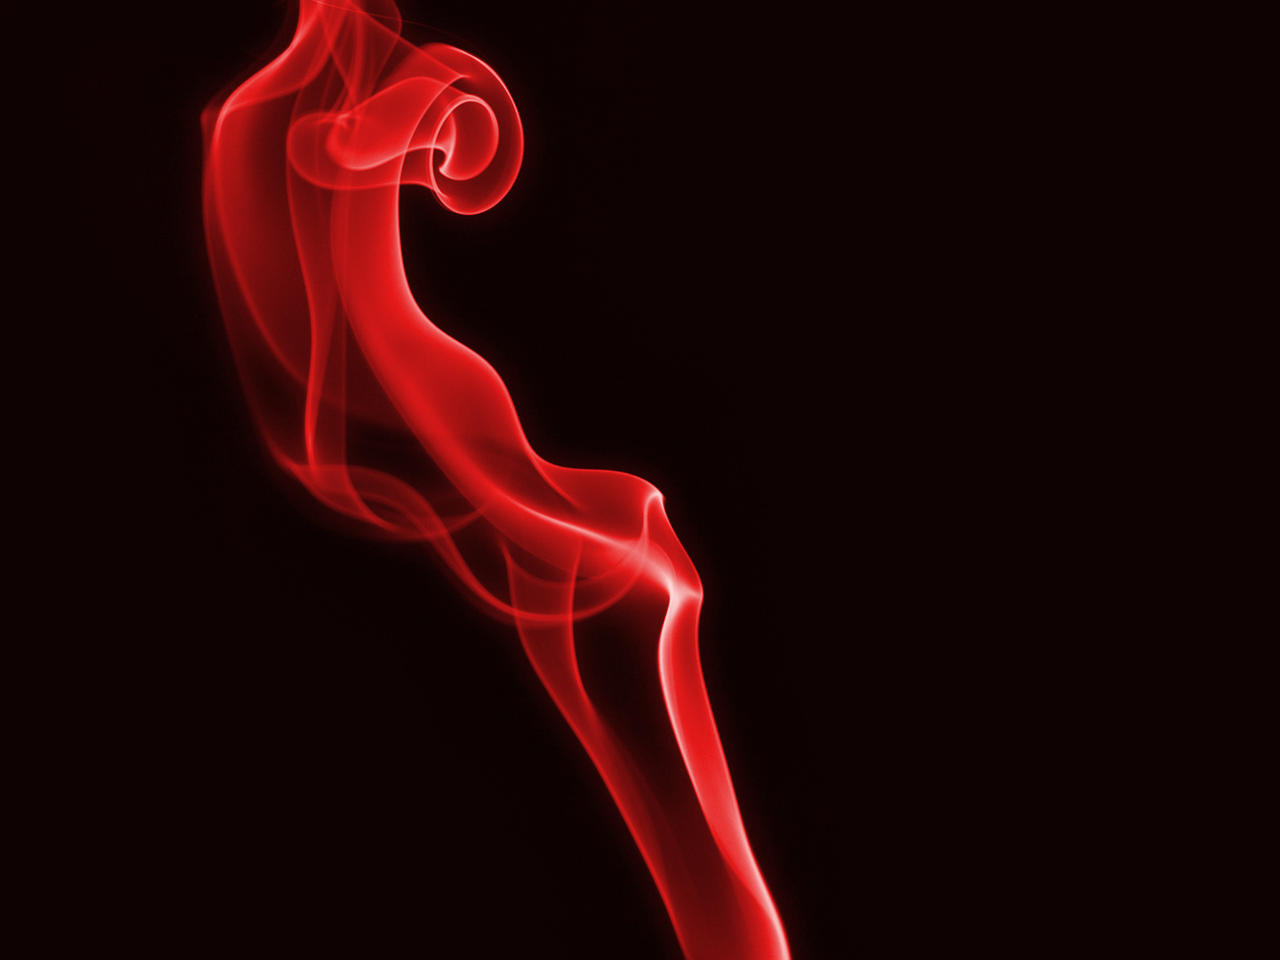 The Dance Of Red Smoke By Hacker340